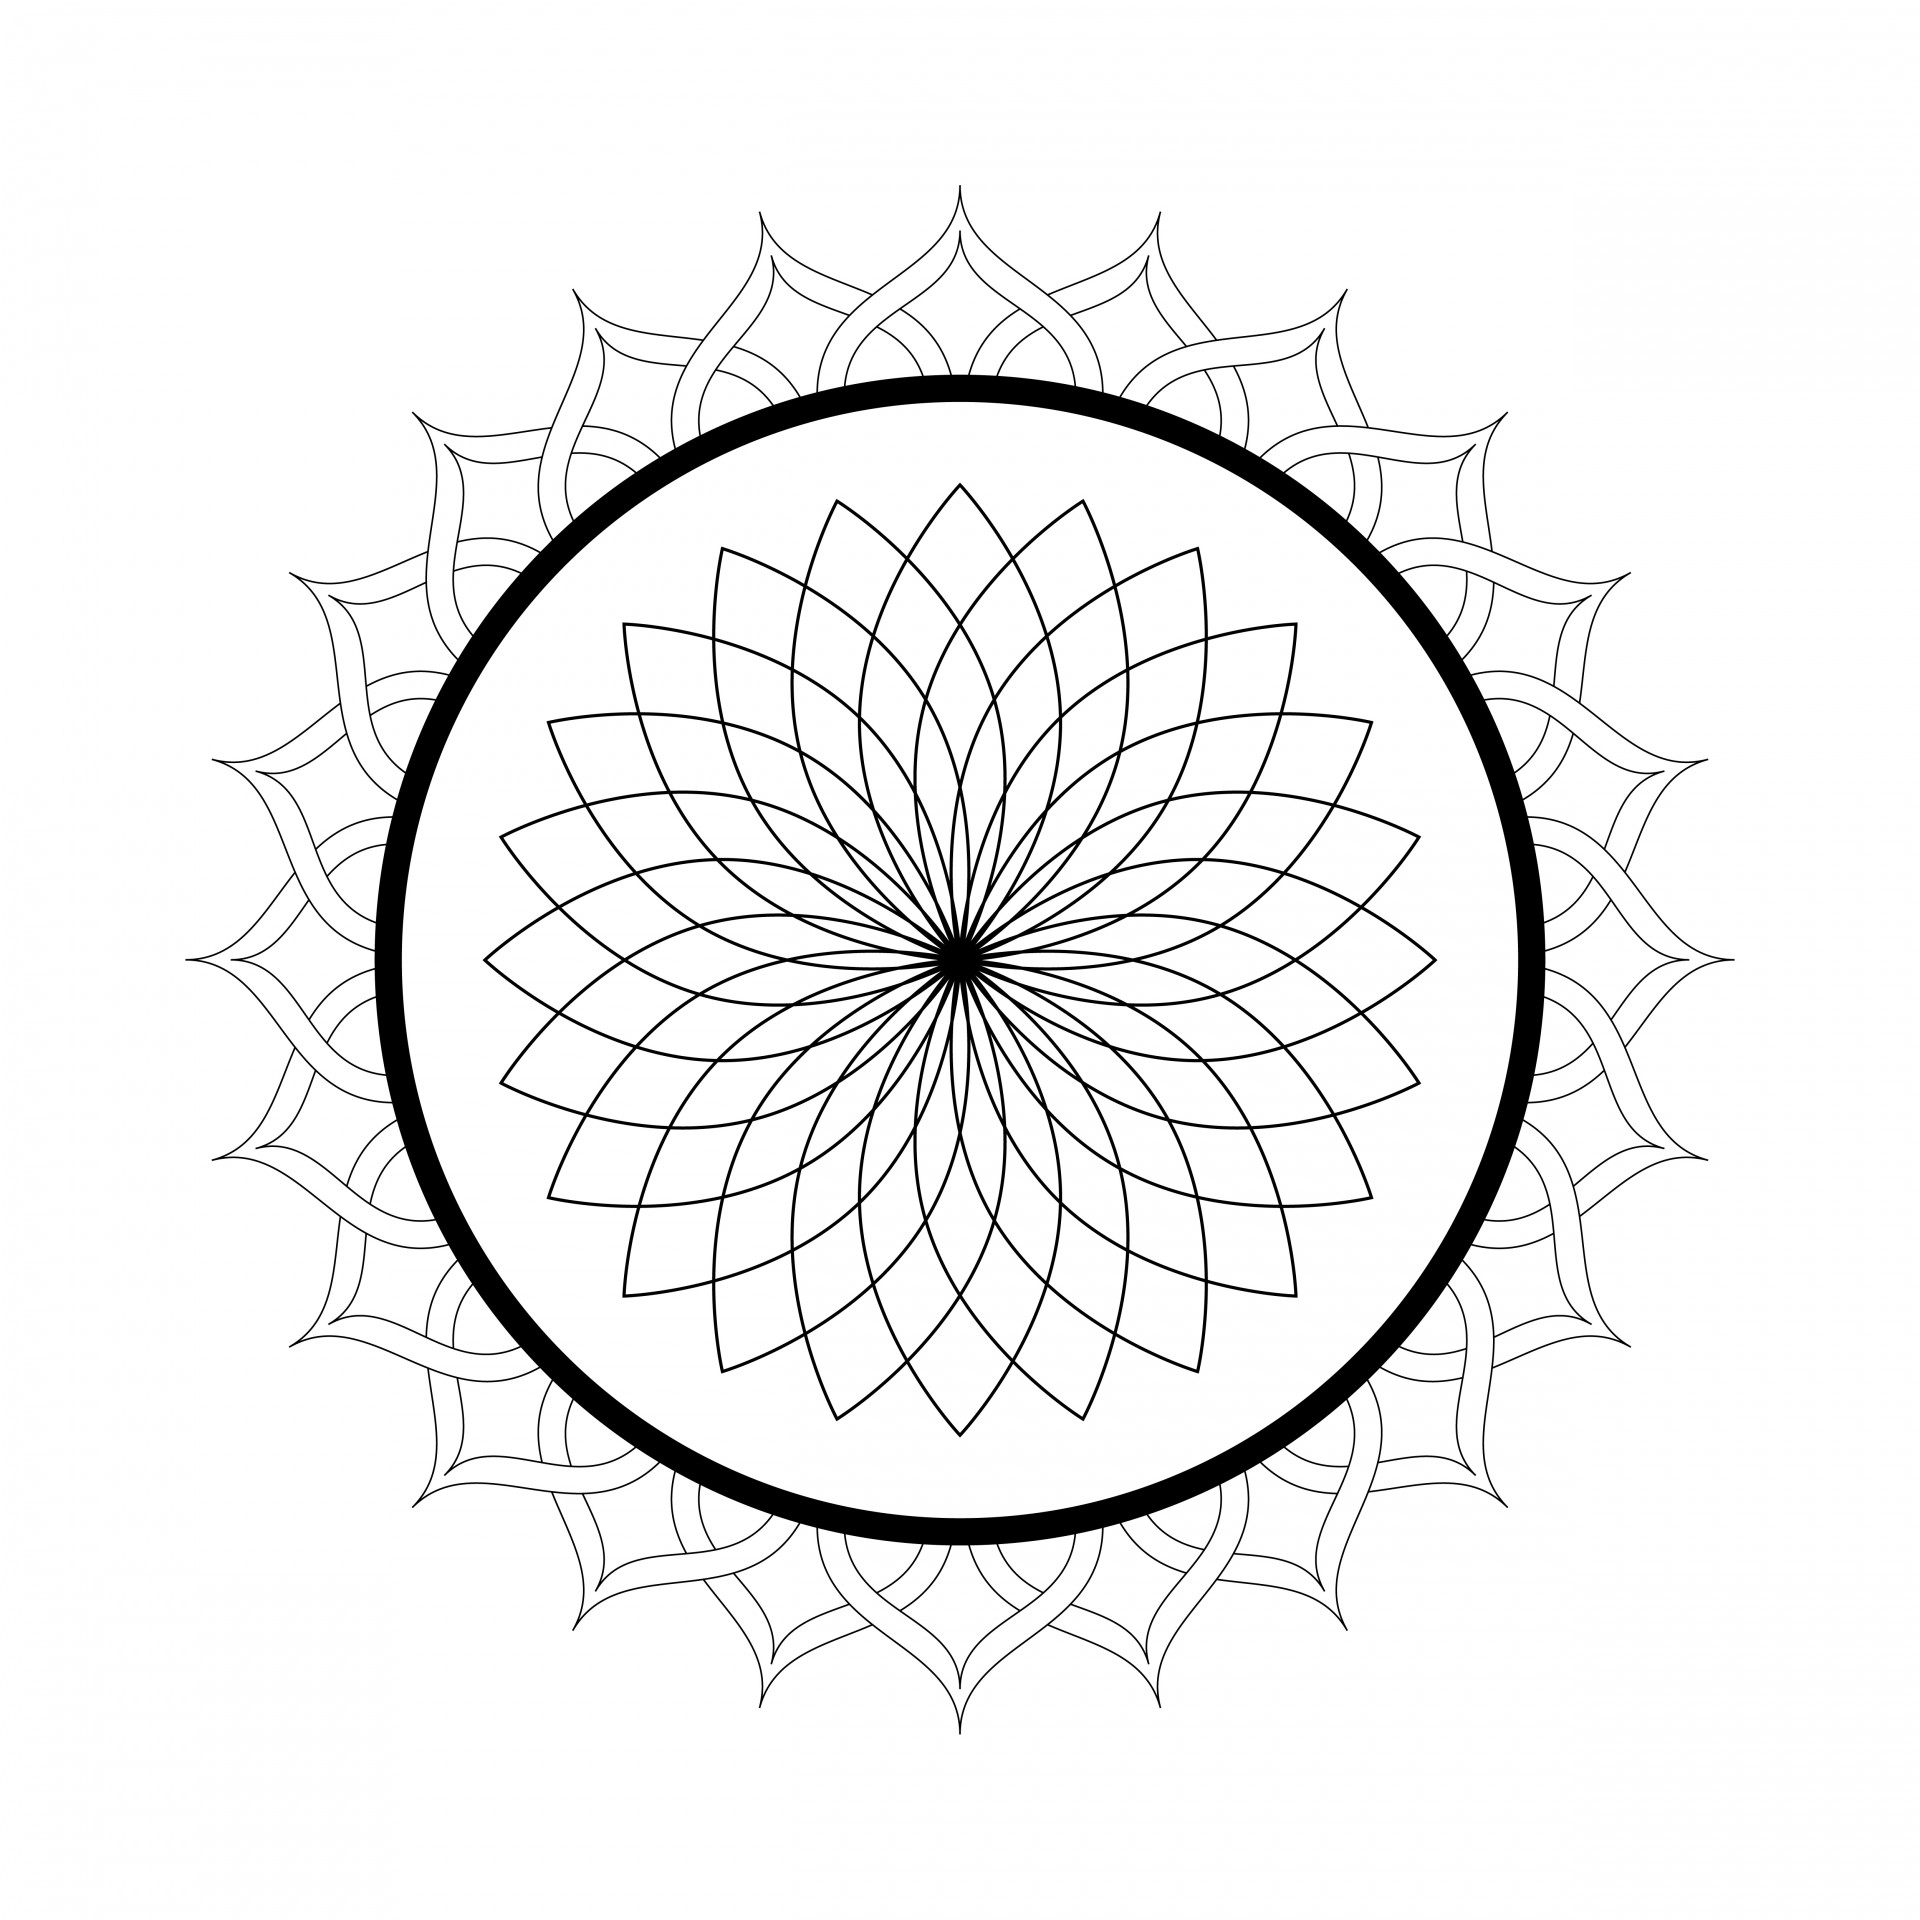 free printable mandalas to color for adults mandala from free coloring books for adults 22 malas to mandalas adults color printable for free